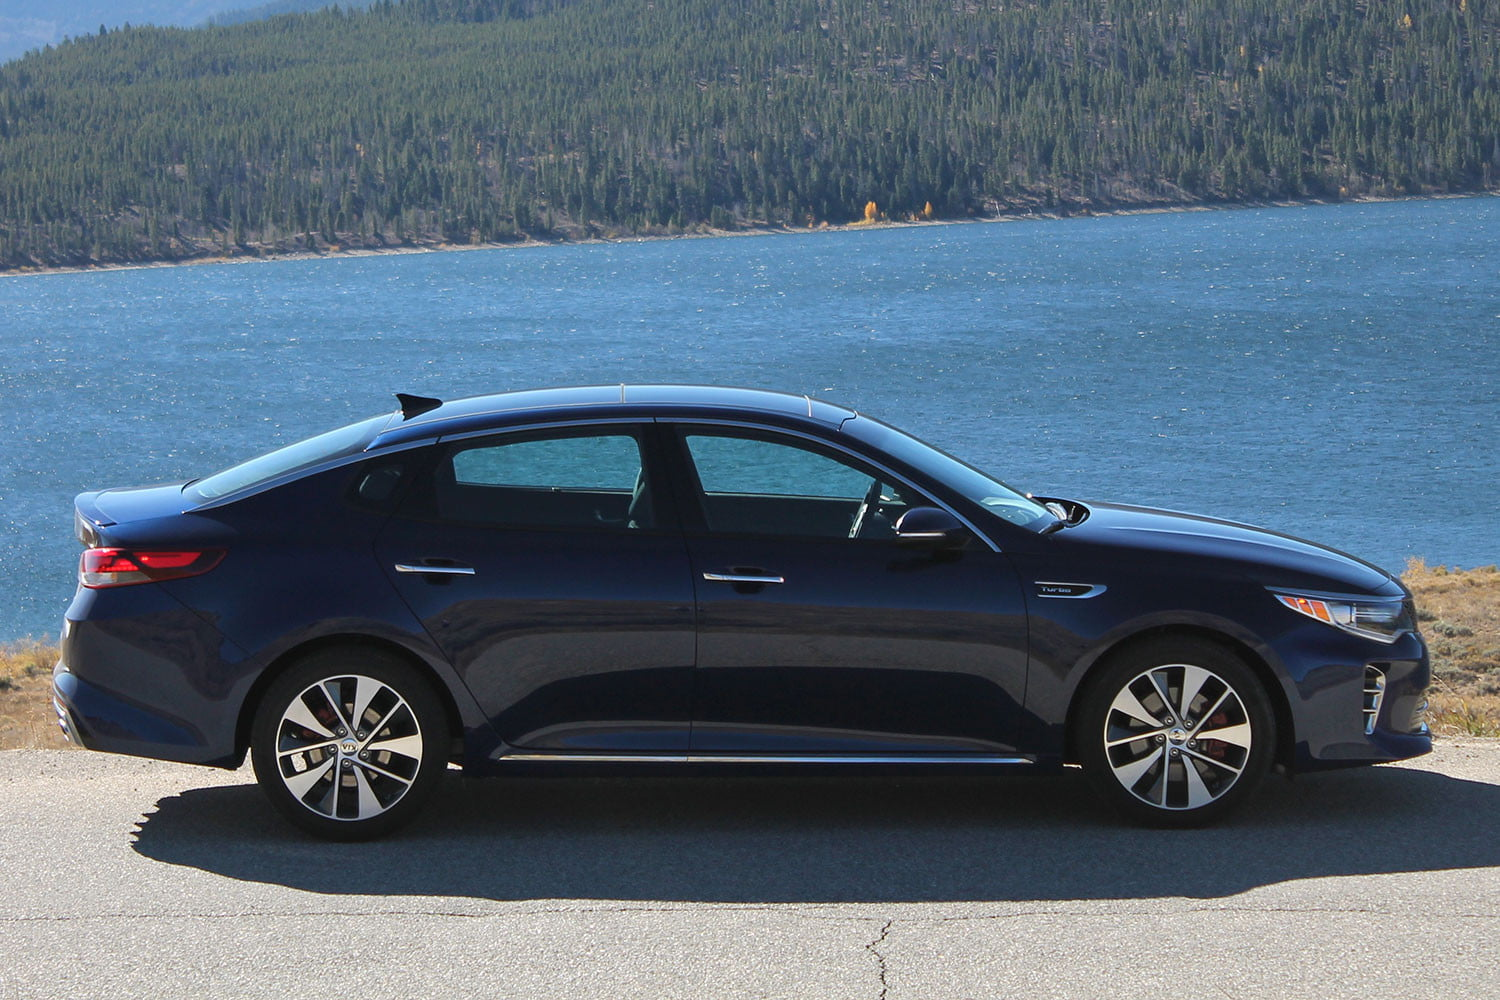 watch kia sxl depth optima tour and review up turbo start youtube in